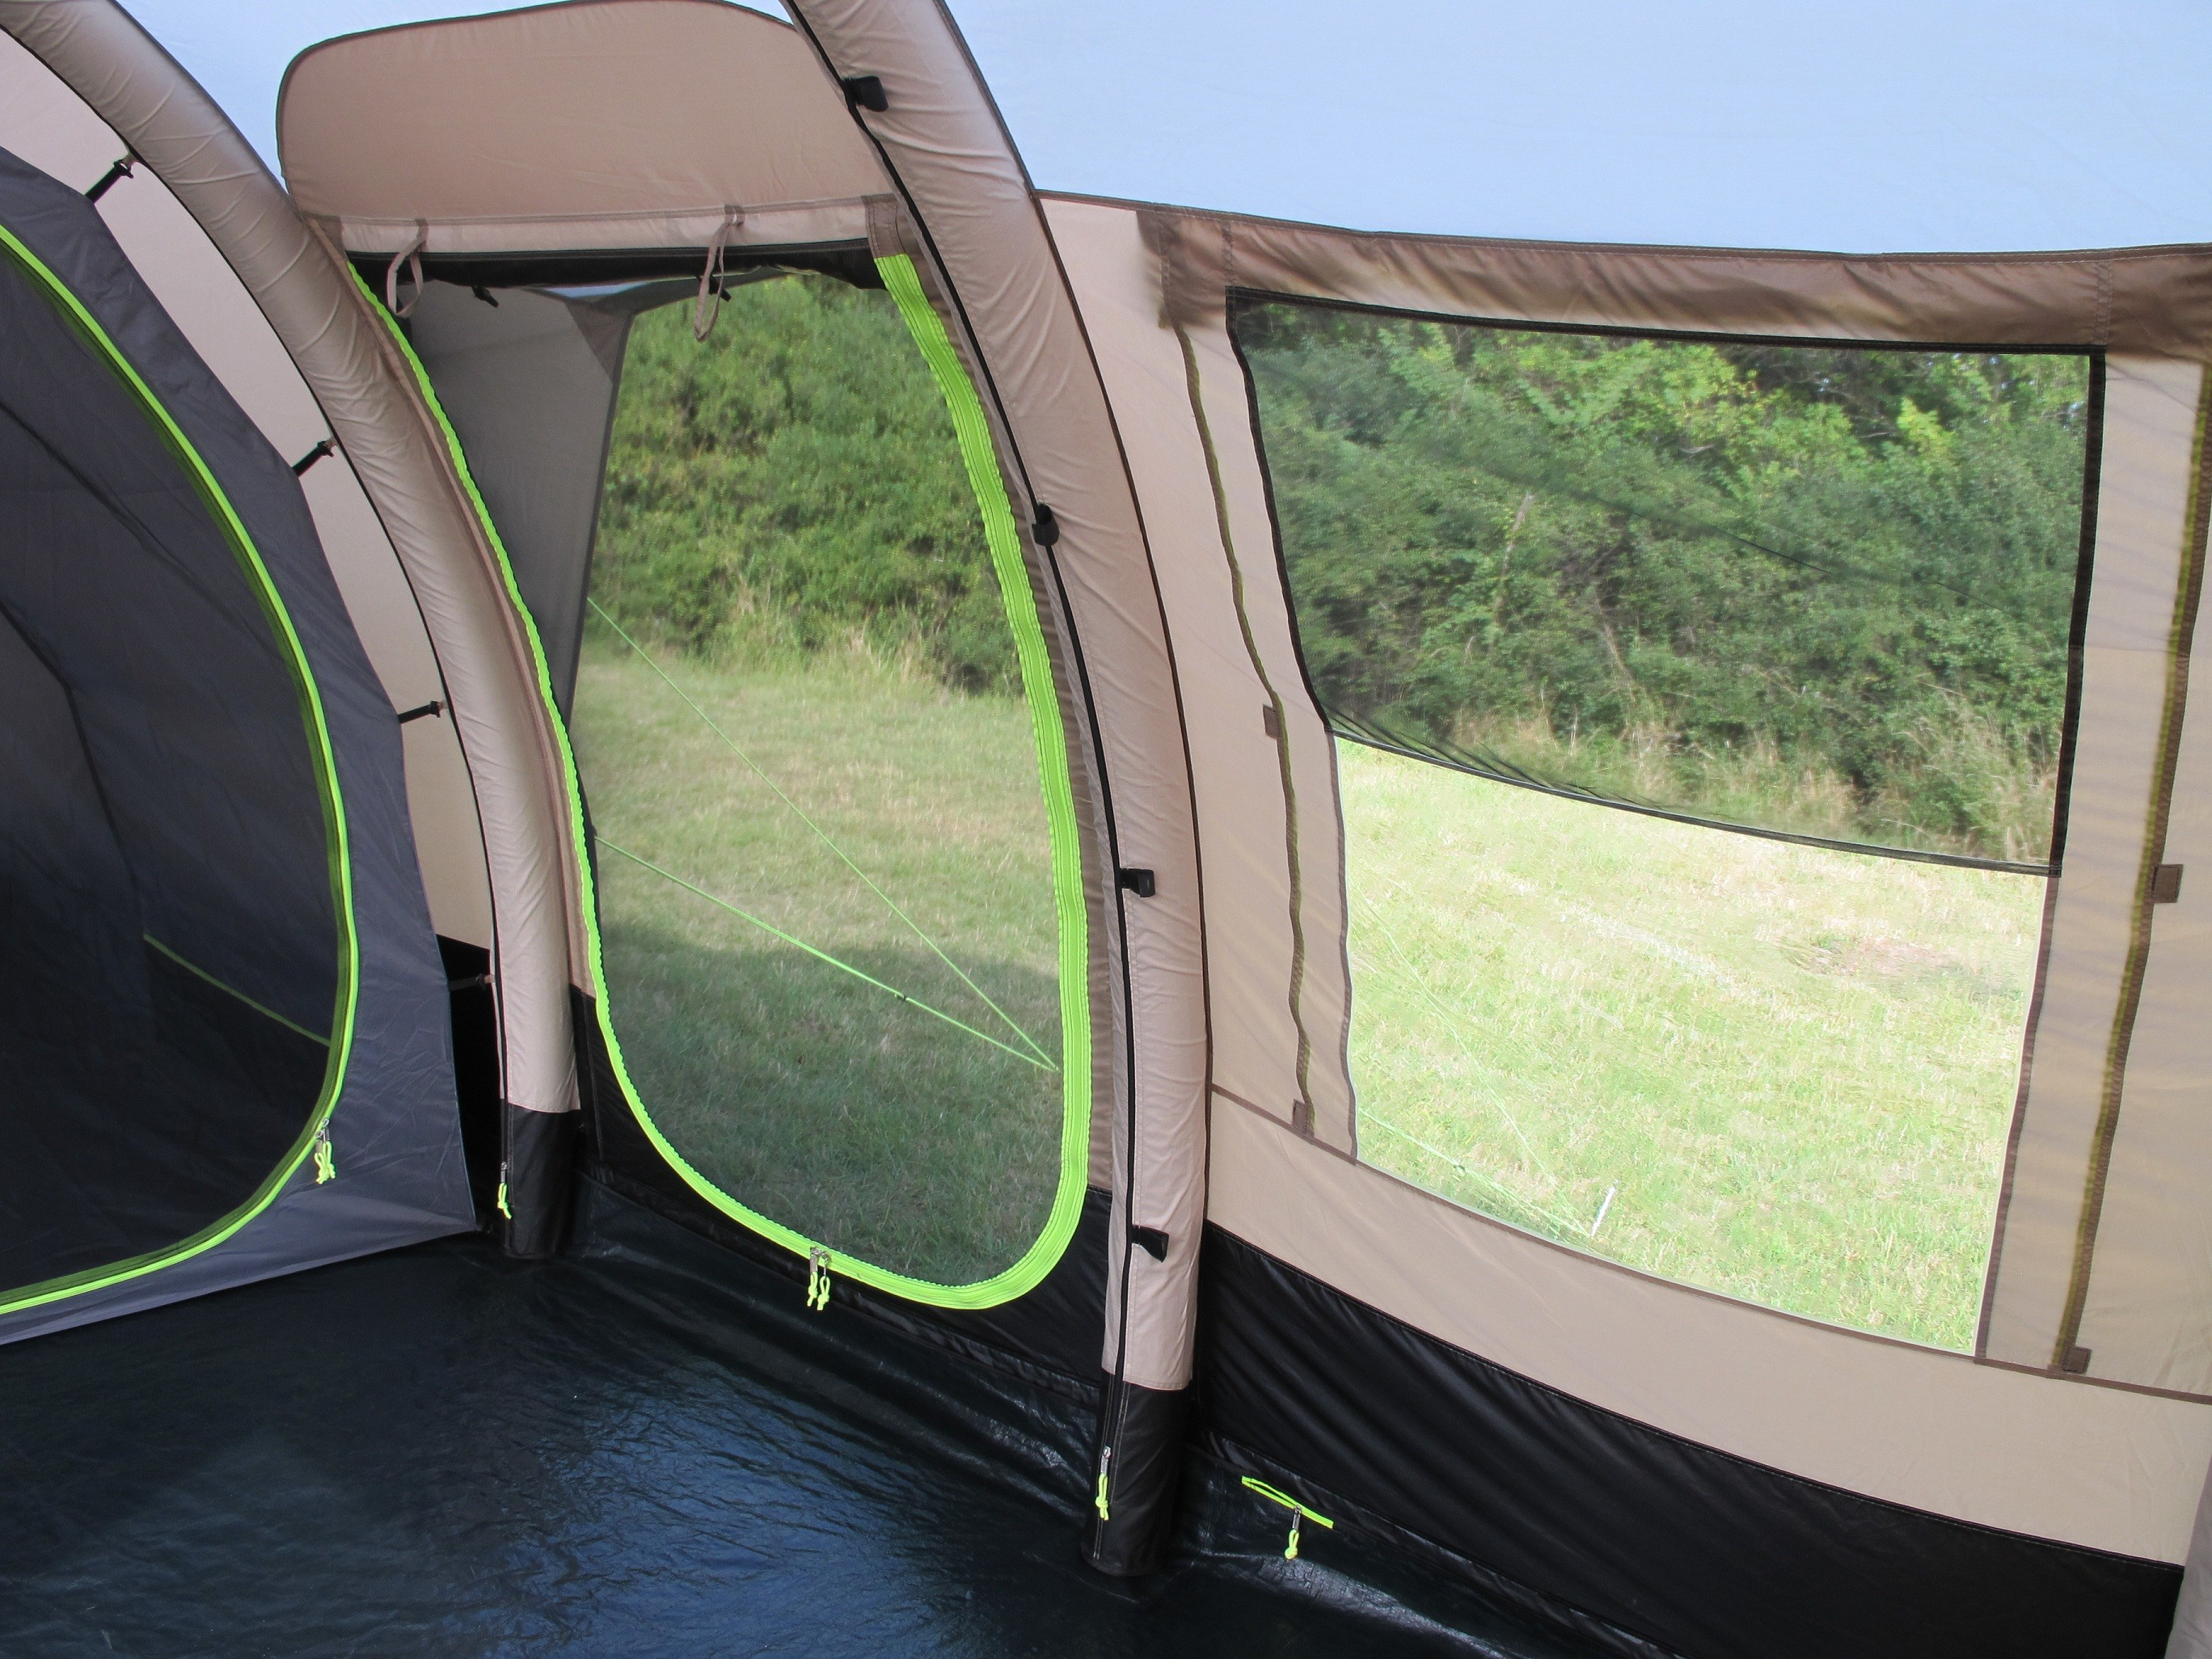 Kampa Southwold 4 + 2 AirFrame Tent by Kampa for £1,360.00